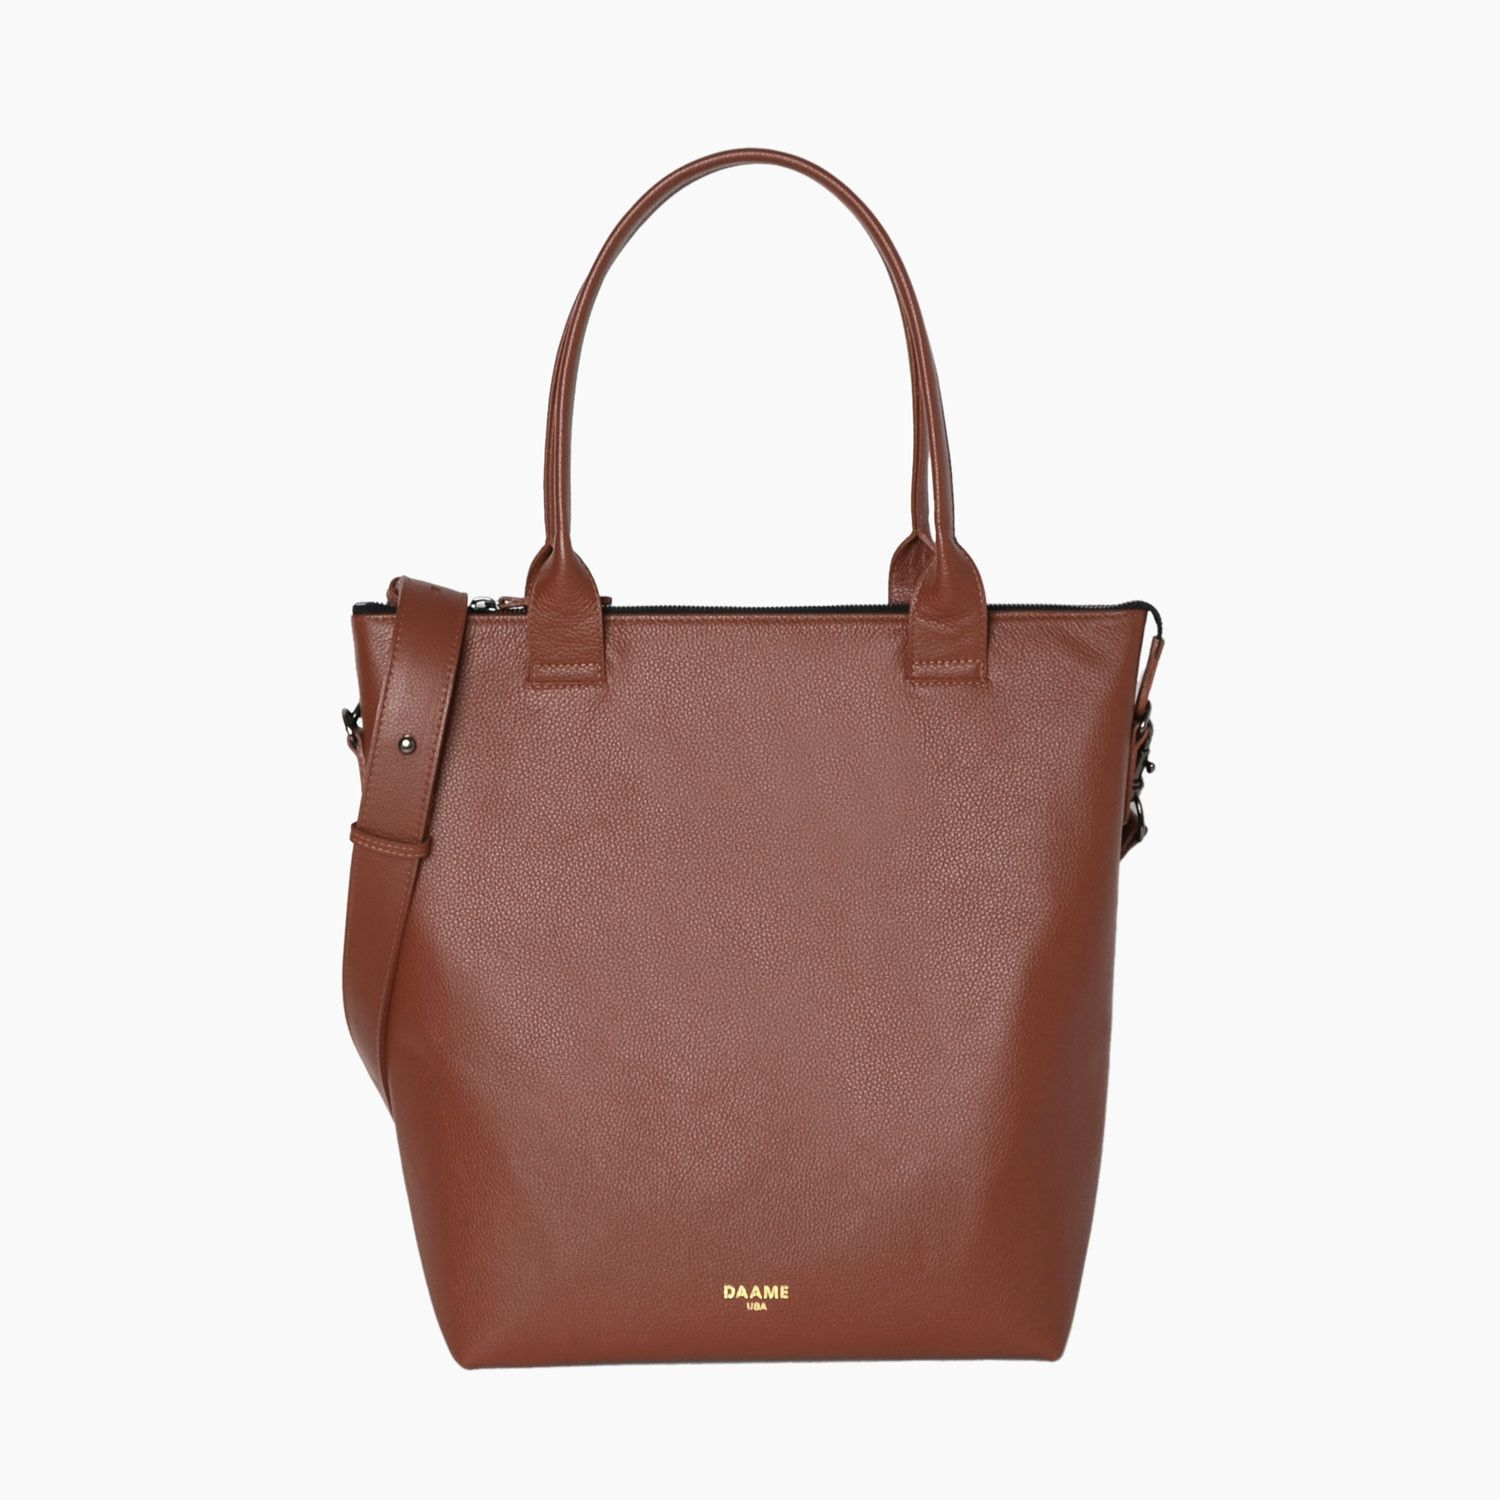 13 laptop tote - Midi no.2 brown   Lightweight, beautiful and useful for work and travel. Made with Italian leather and engineered lining to make life a breeze.